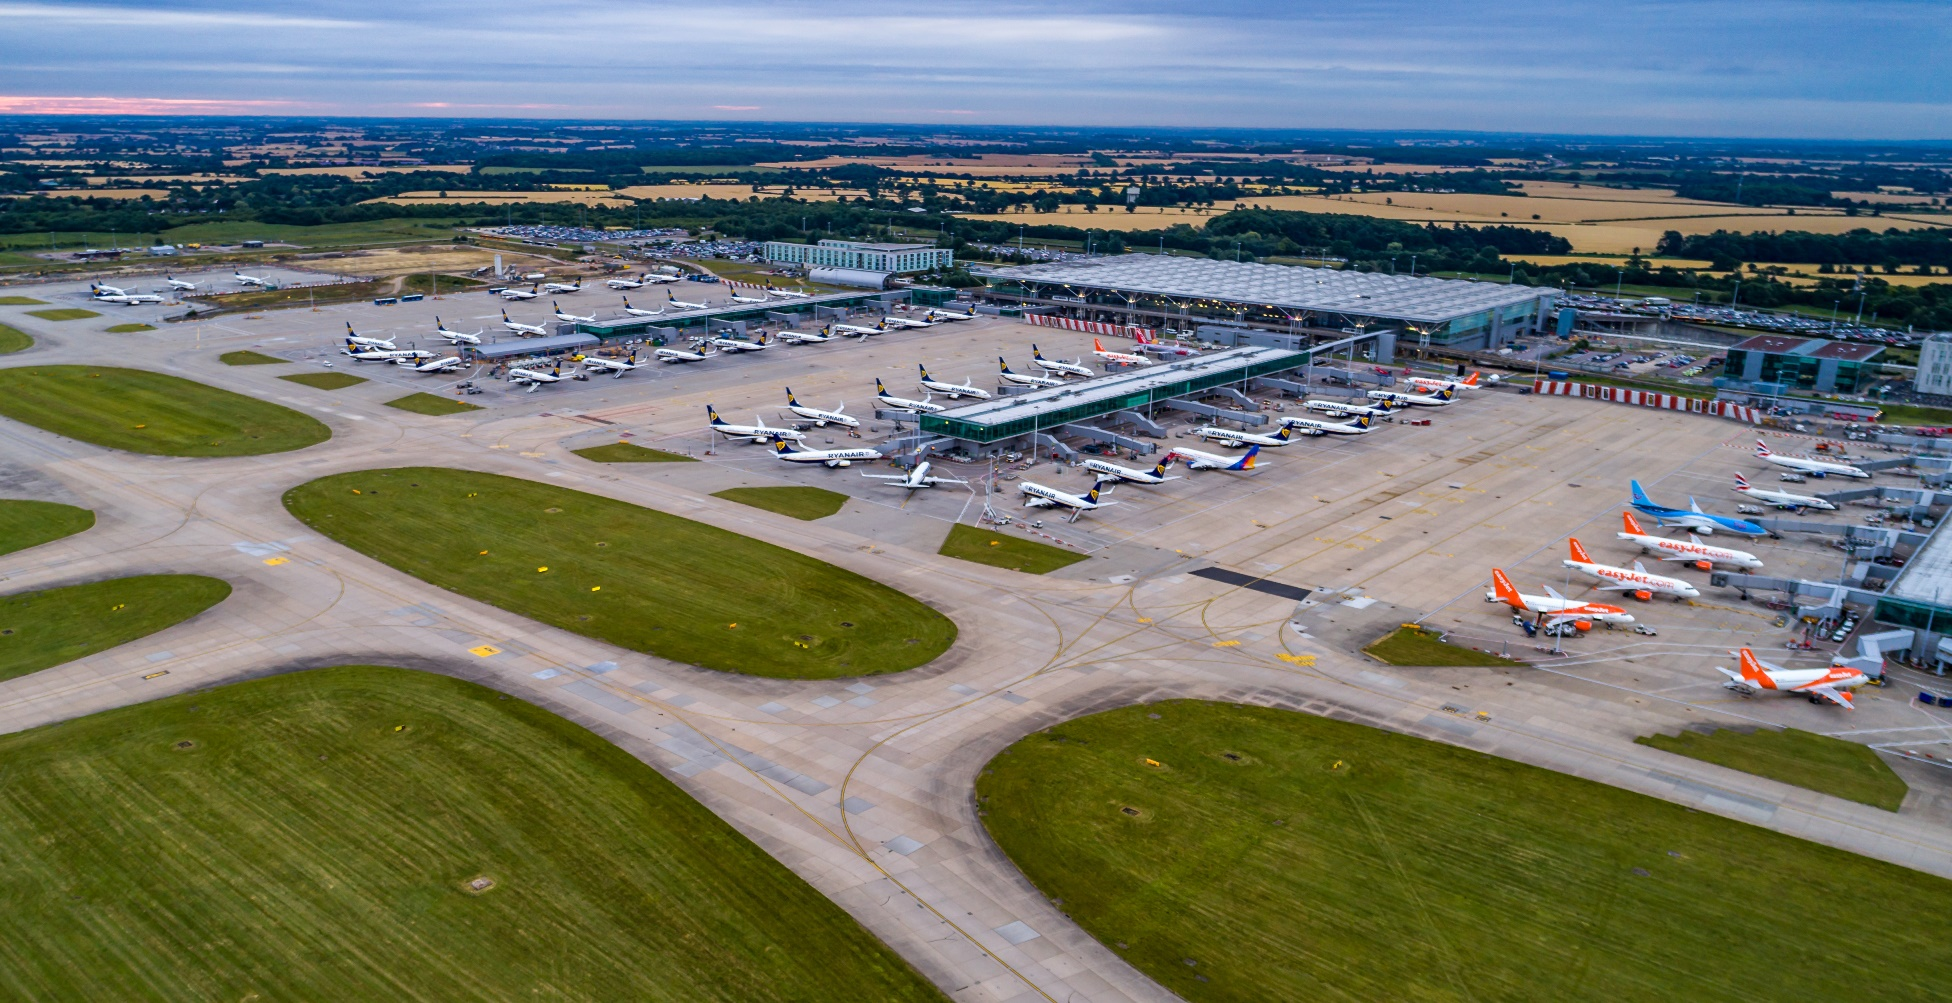 London stansted airport commits to long term growth within approved london stansted airport commits to long term growth within approved flight and noise limits kristyandbryce Choice Image